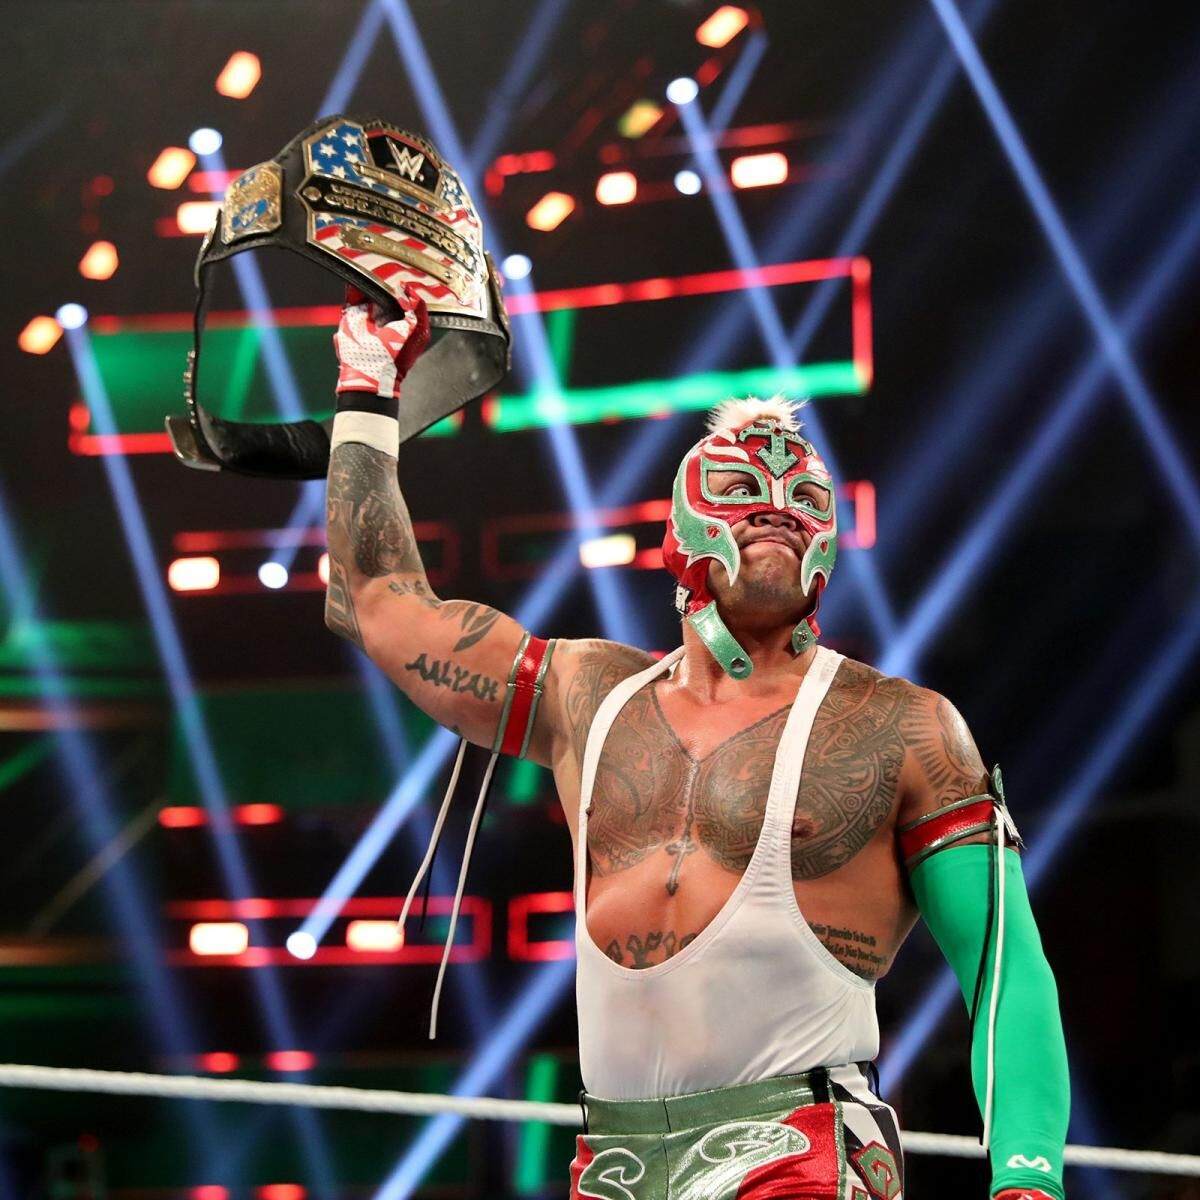 Rey Mysterio gives injury update, should return this summer